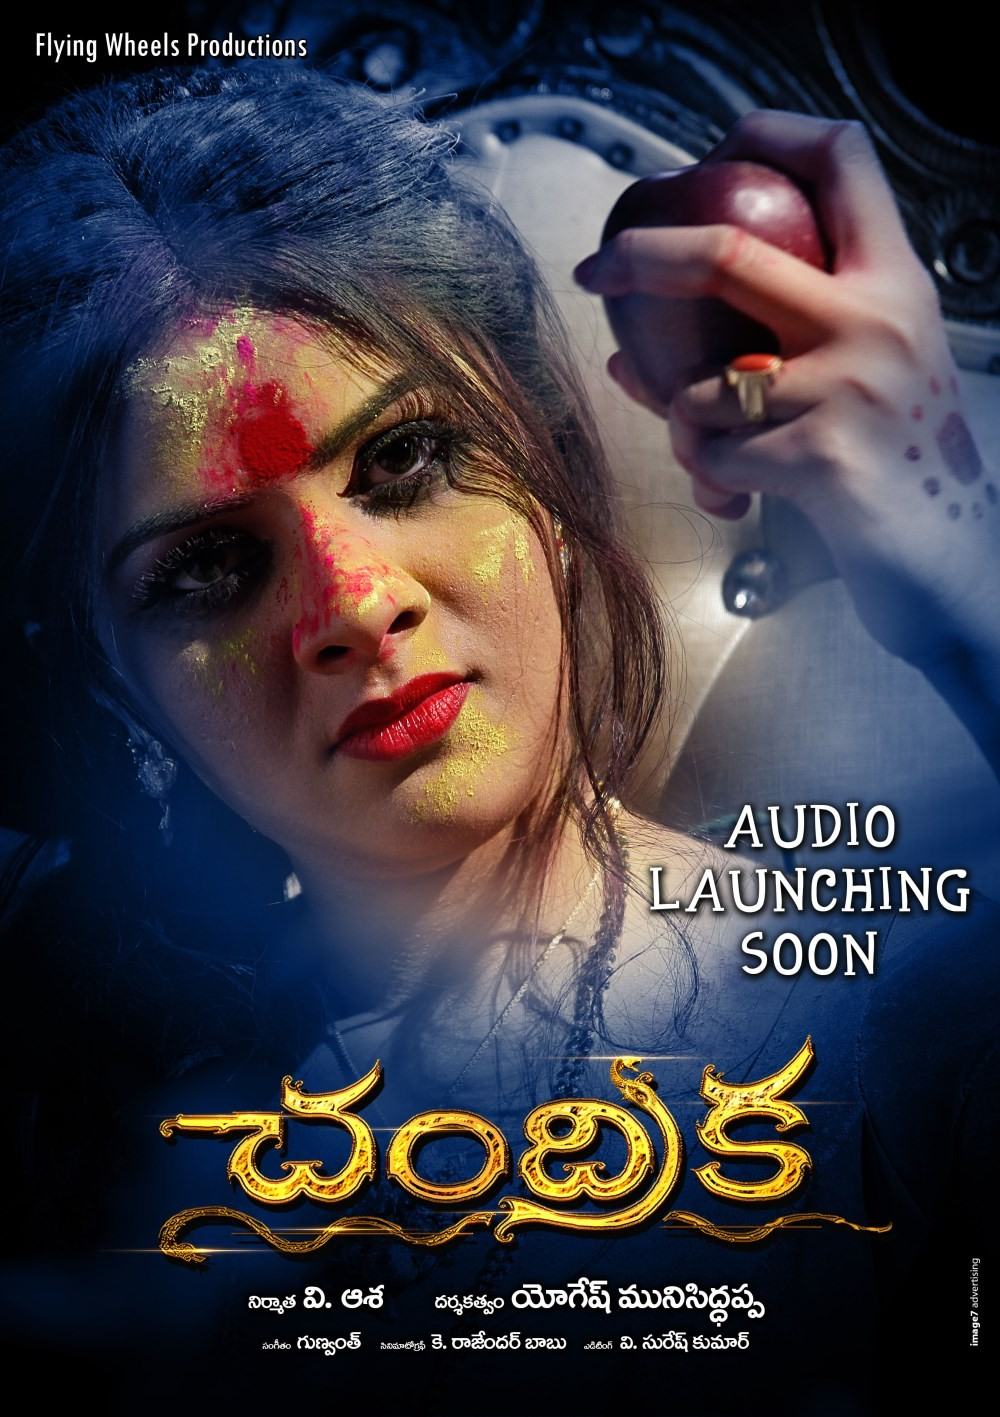 Chandrika Movie Posters,Chandrika,telugu movie Chandrika,Arjun,Kamna Jethmalani,Srimukhi,telugu movie Chandrika poster,Chandrika movie poster,Chandrika movie pics,Chandrika movie images,Chandrika movie stills